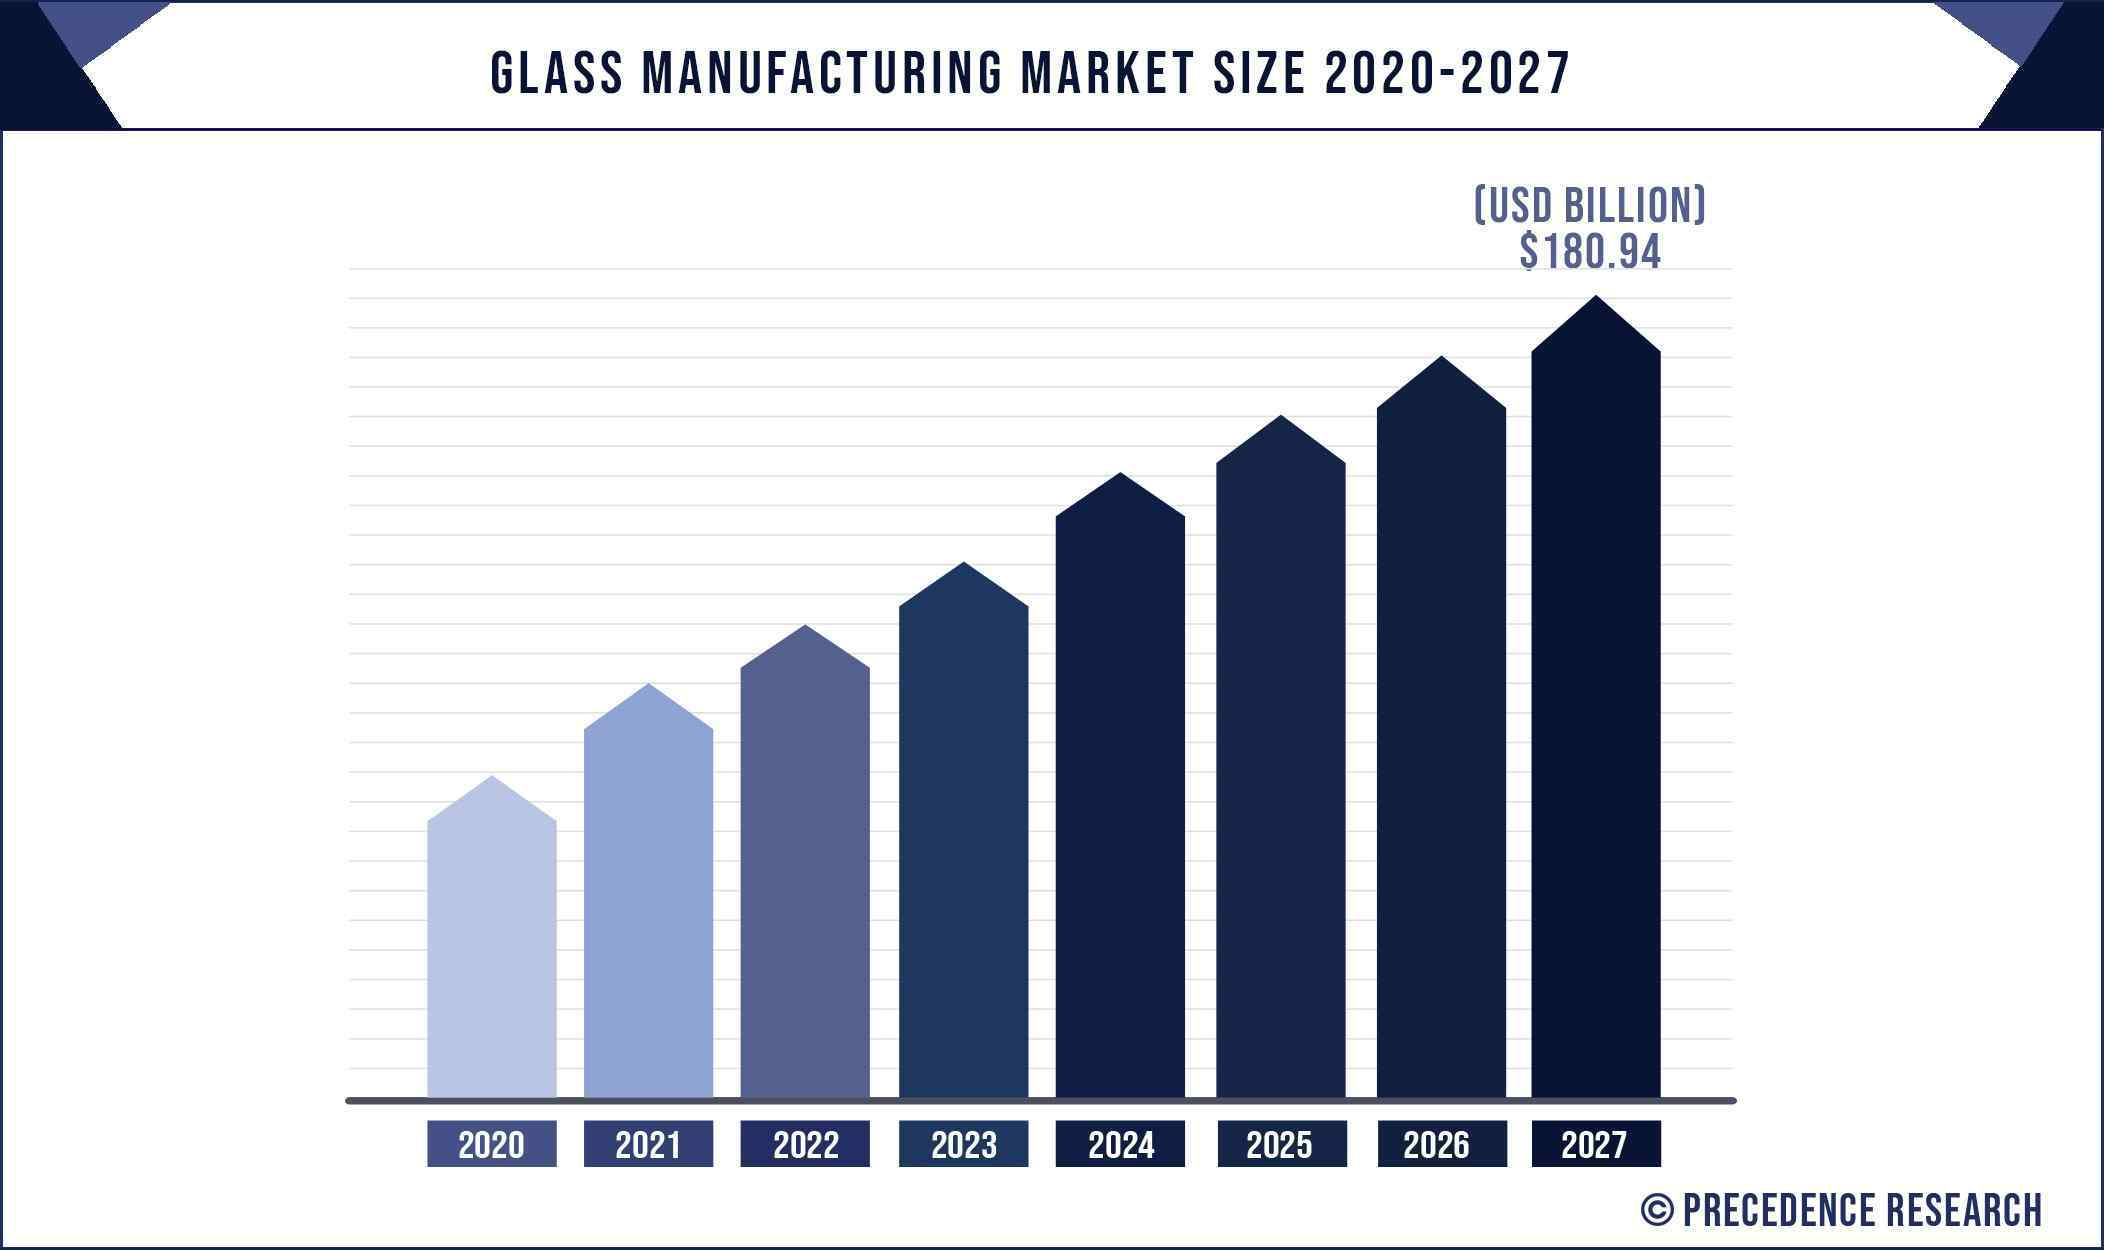 Glass Manufacturing Market Size 2020 to 2027